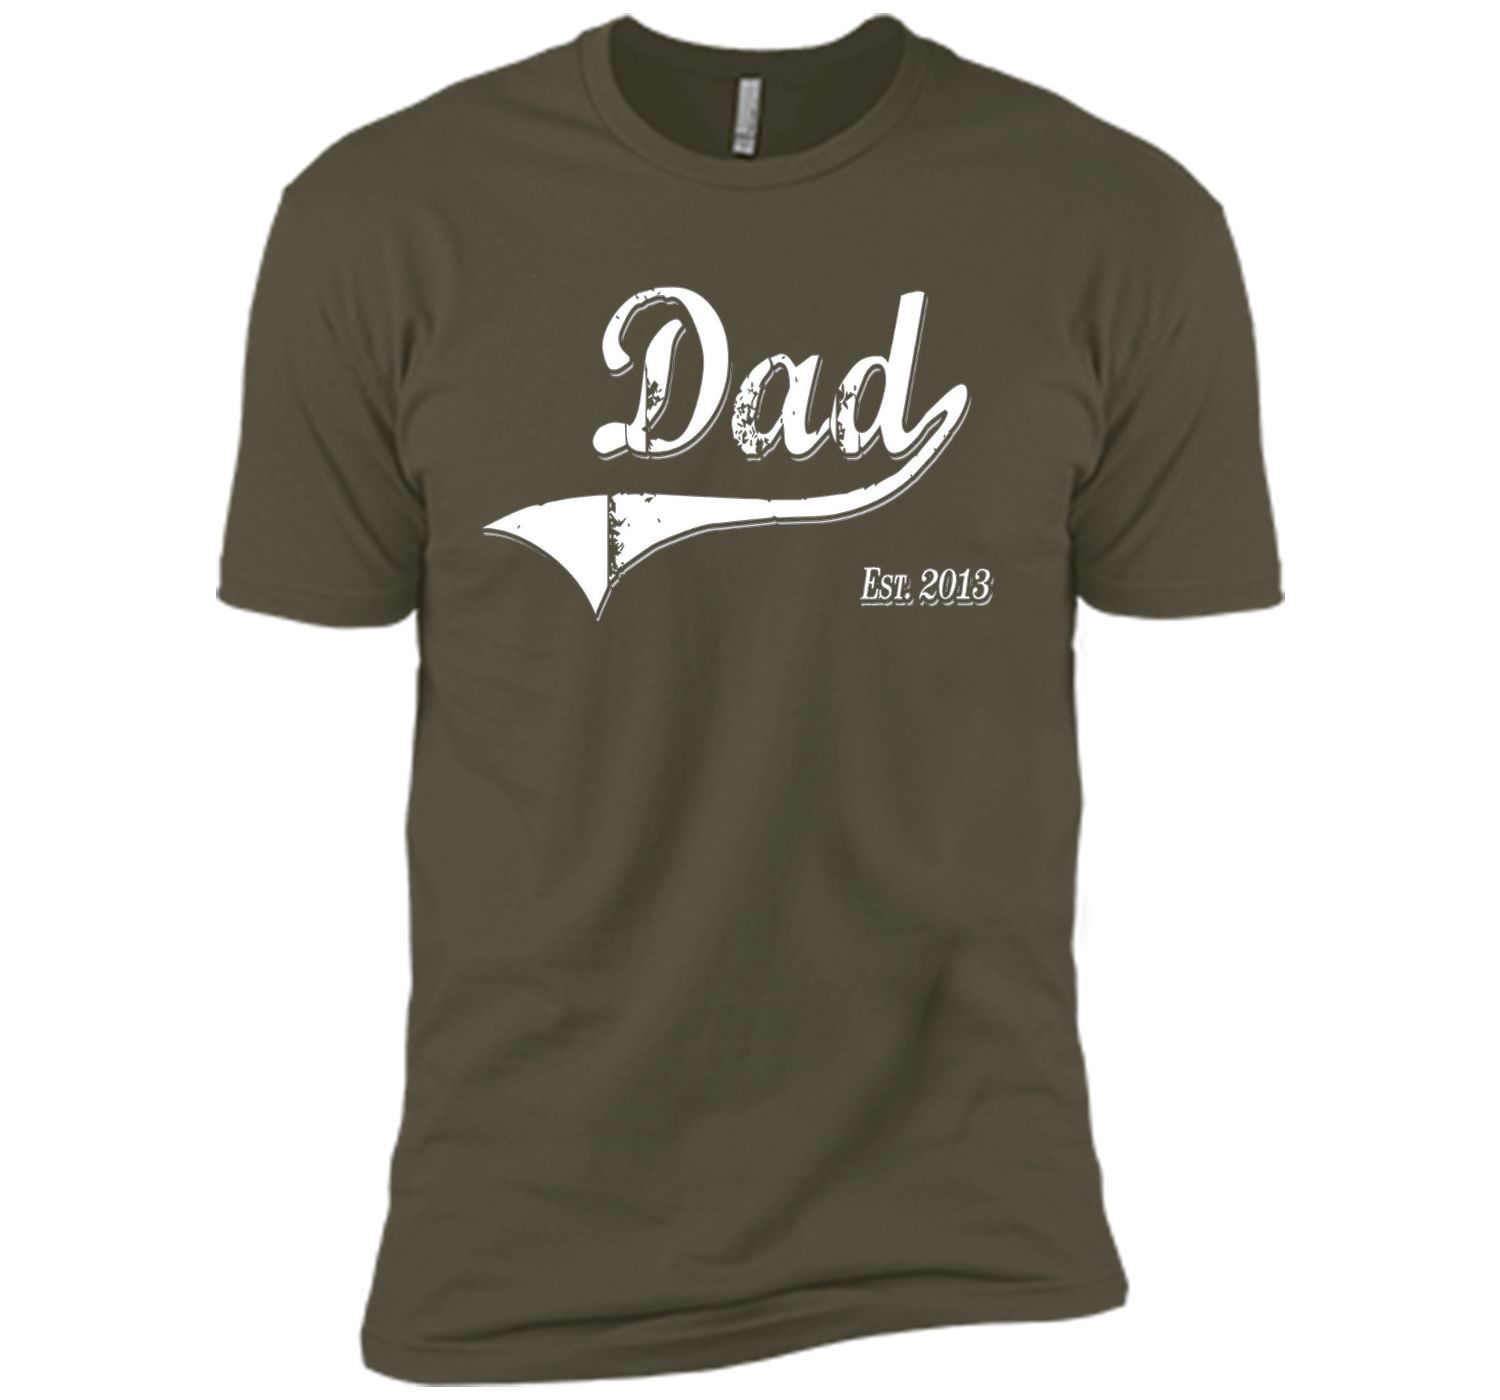 Dad Est. 2013 T Shirt Fathers Day Gift for Daddy New Gift